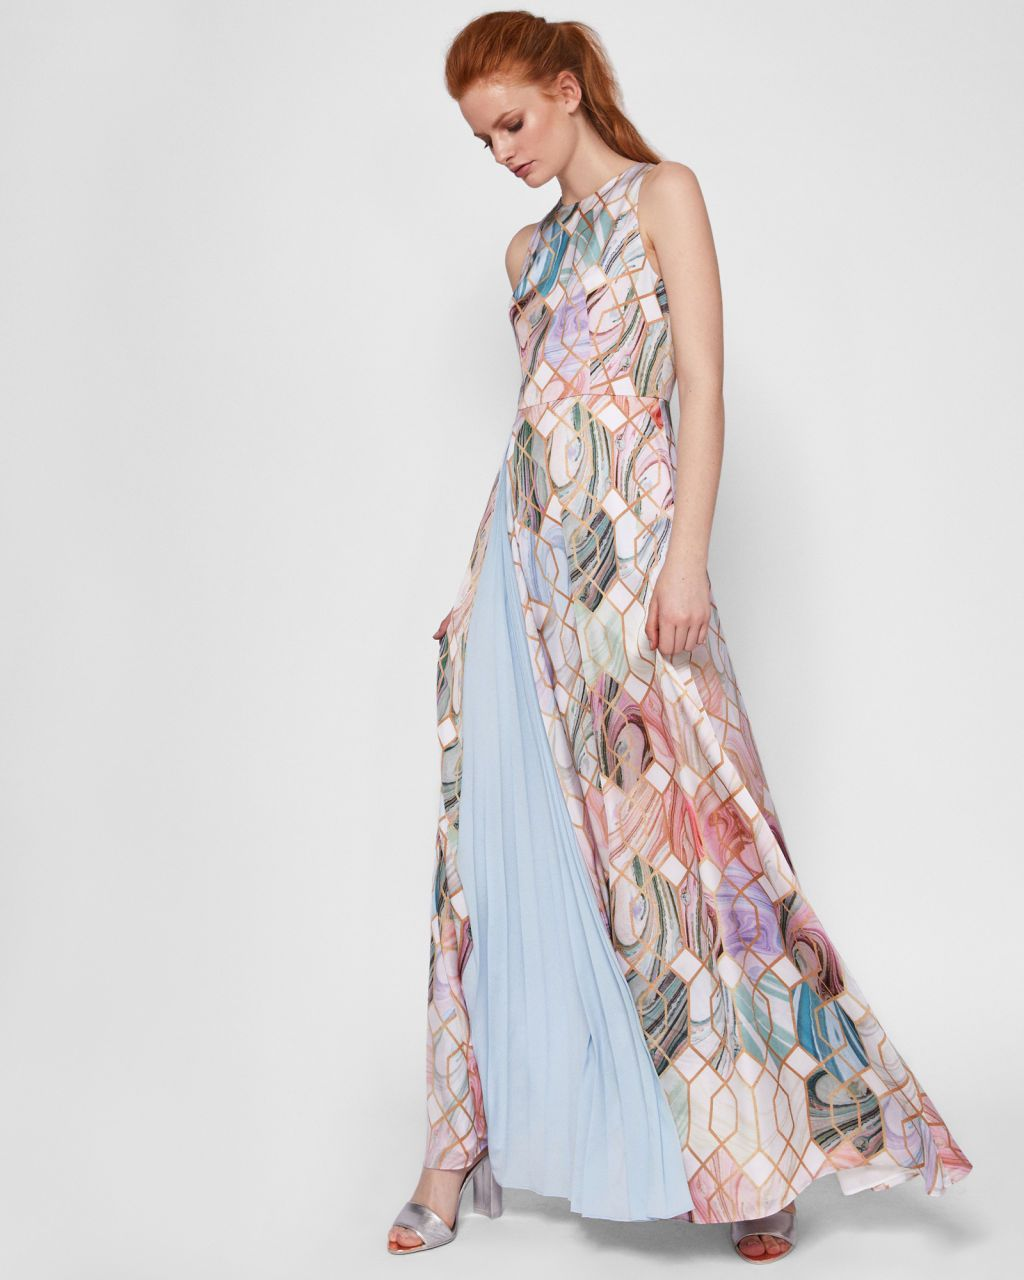 8aaa22a4b2e Make an entrance at your next event in the exquisite BRENNDA maxi dress.  Designed in the opulent Sea of Clouds print